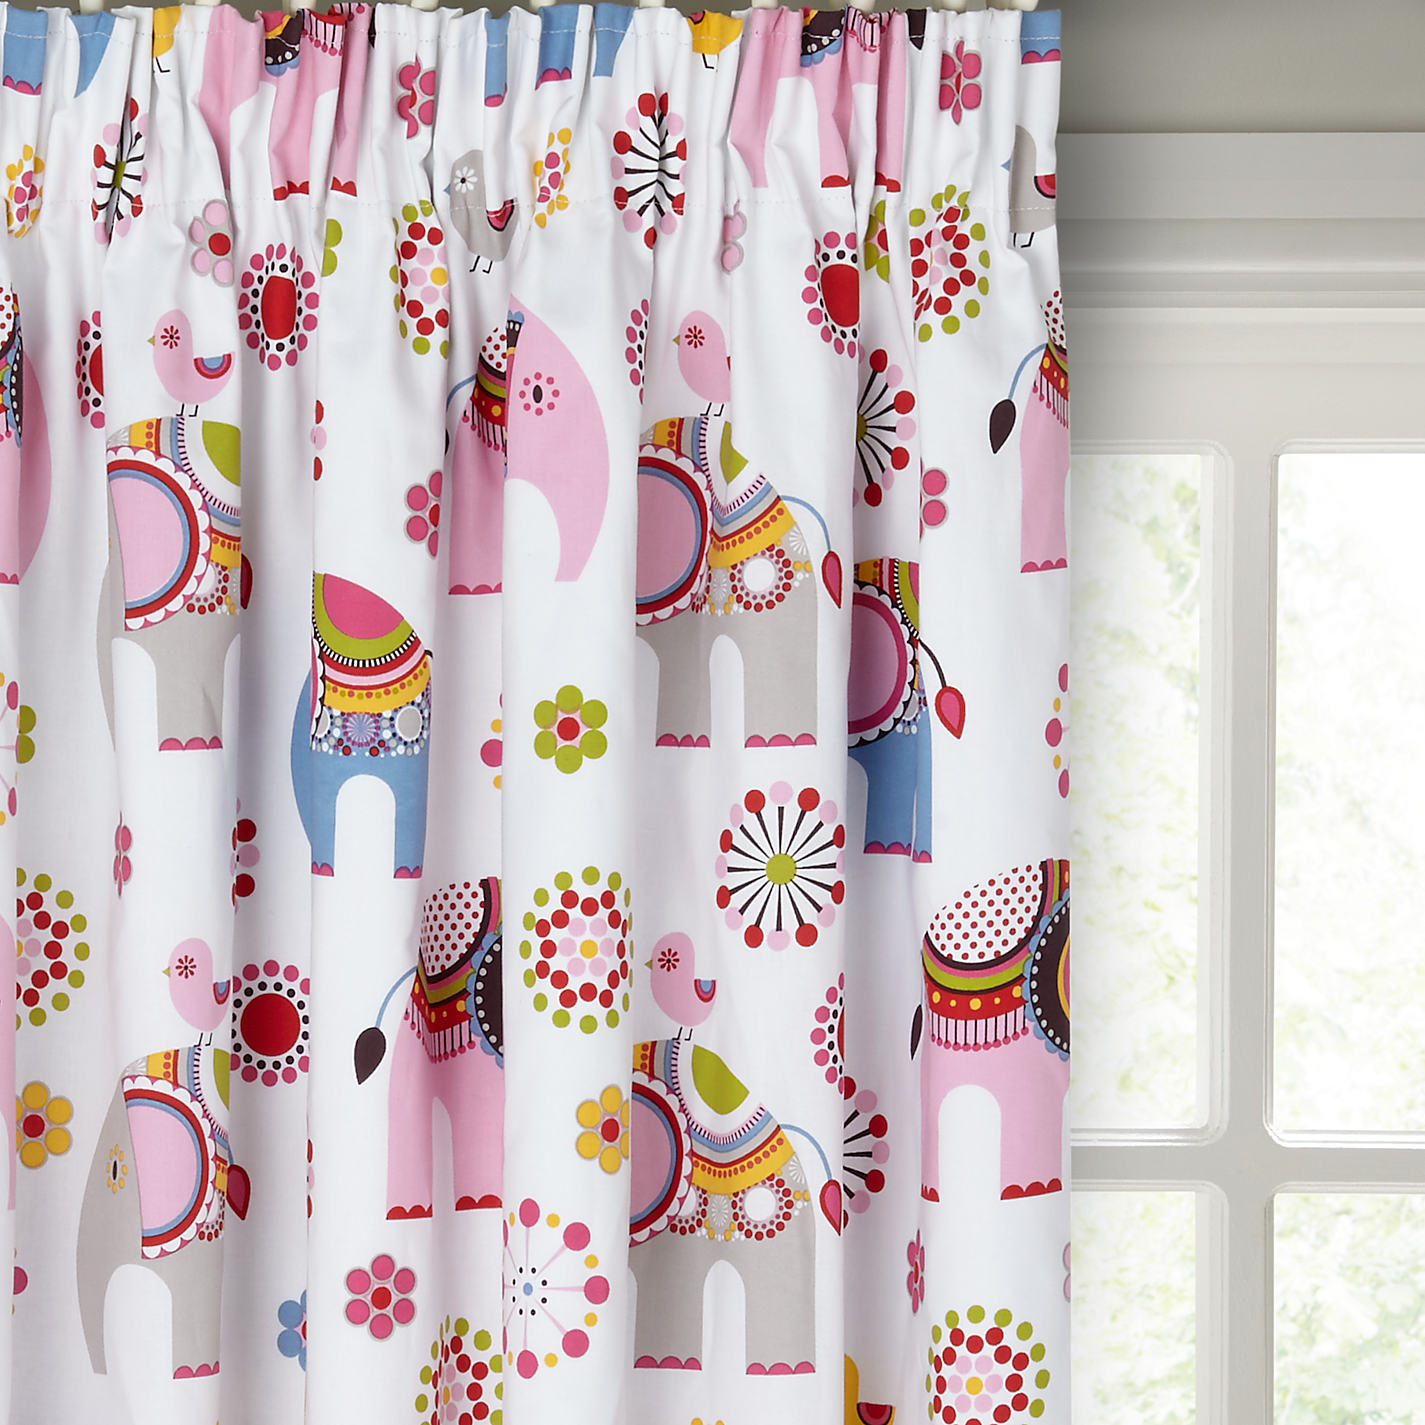 Owl Bedroom Curtains Blackout Lined Ready Made Curtains Voiles John Lewis